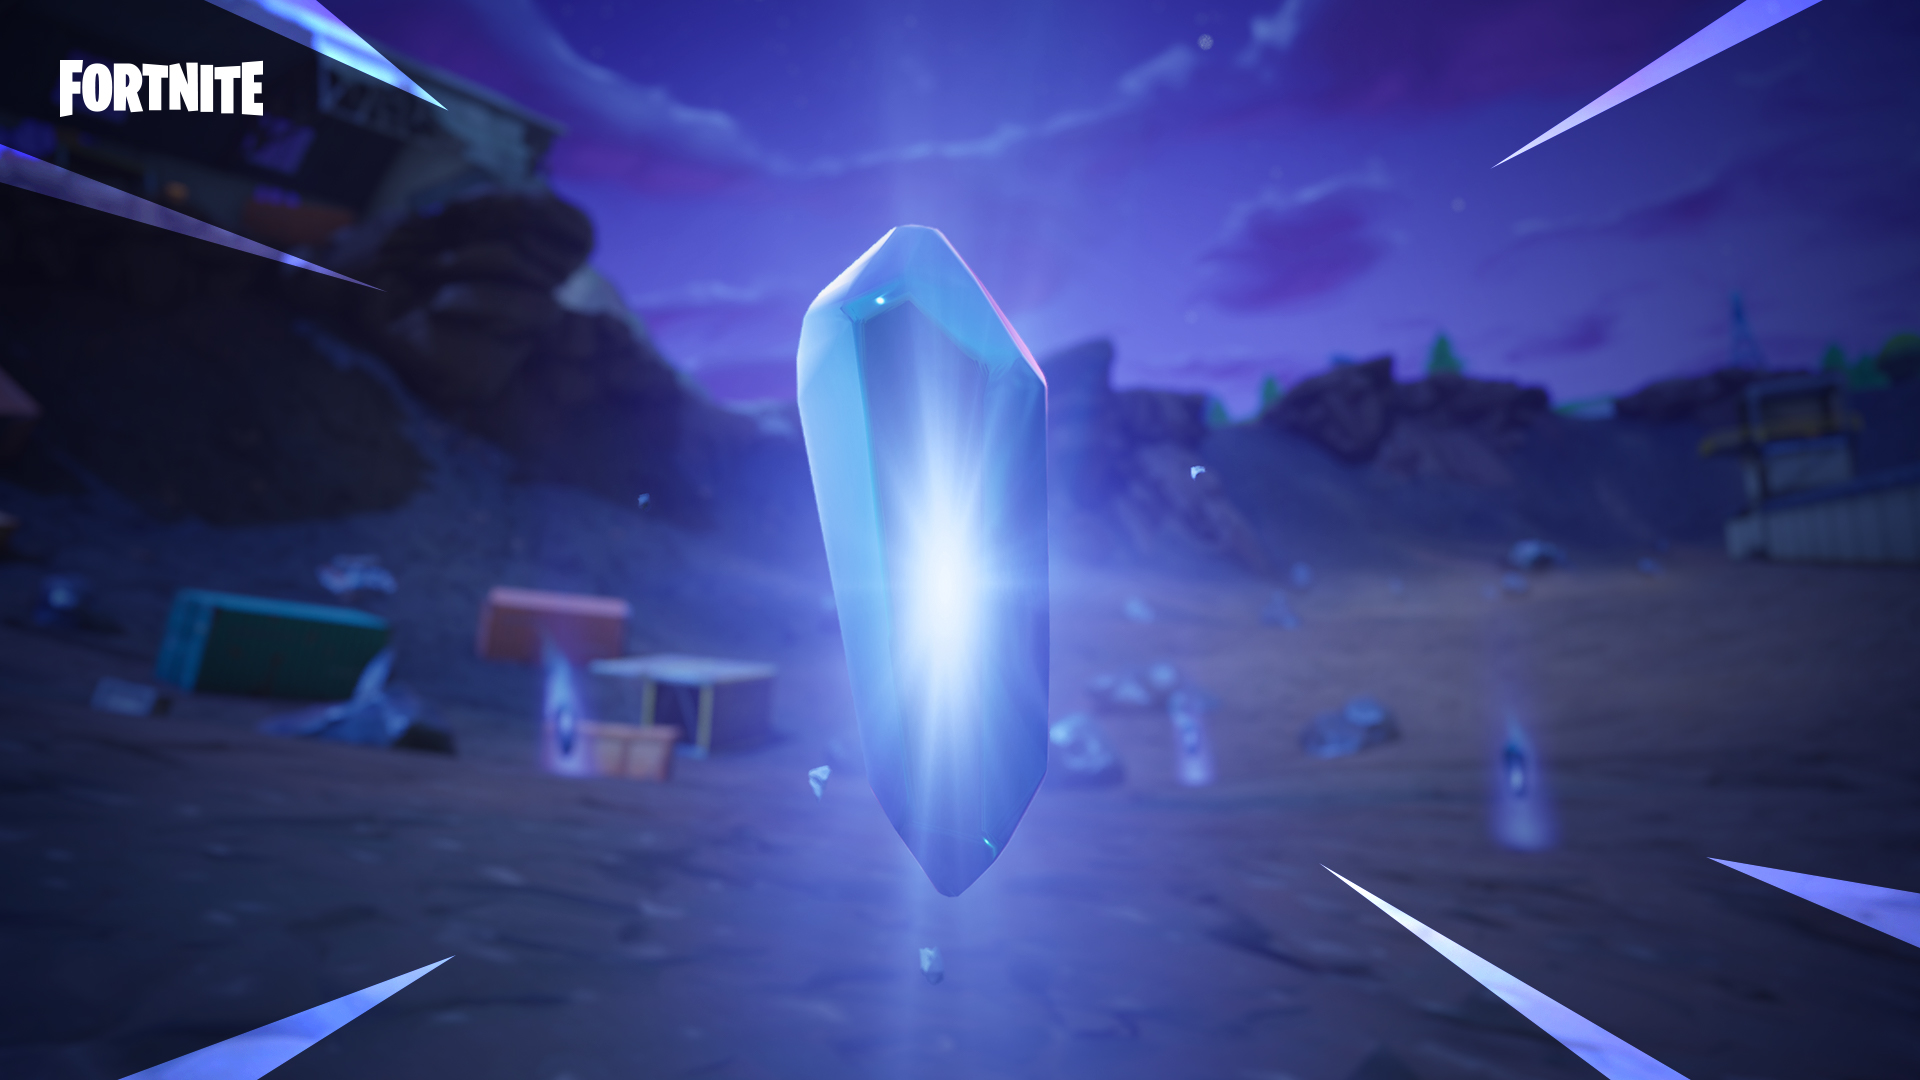 Leaked Fortnite Week 5 Challenges Reveal First Look At Gravity